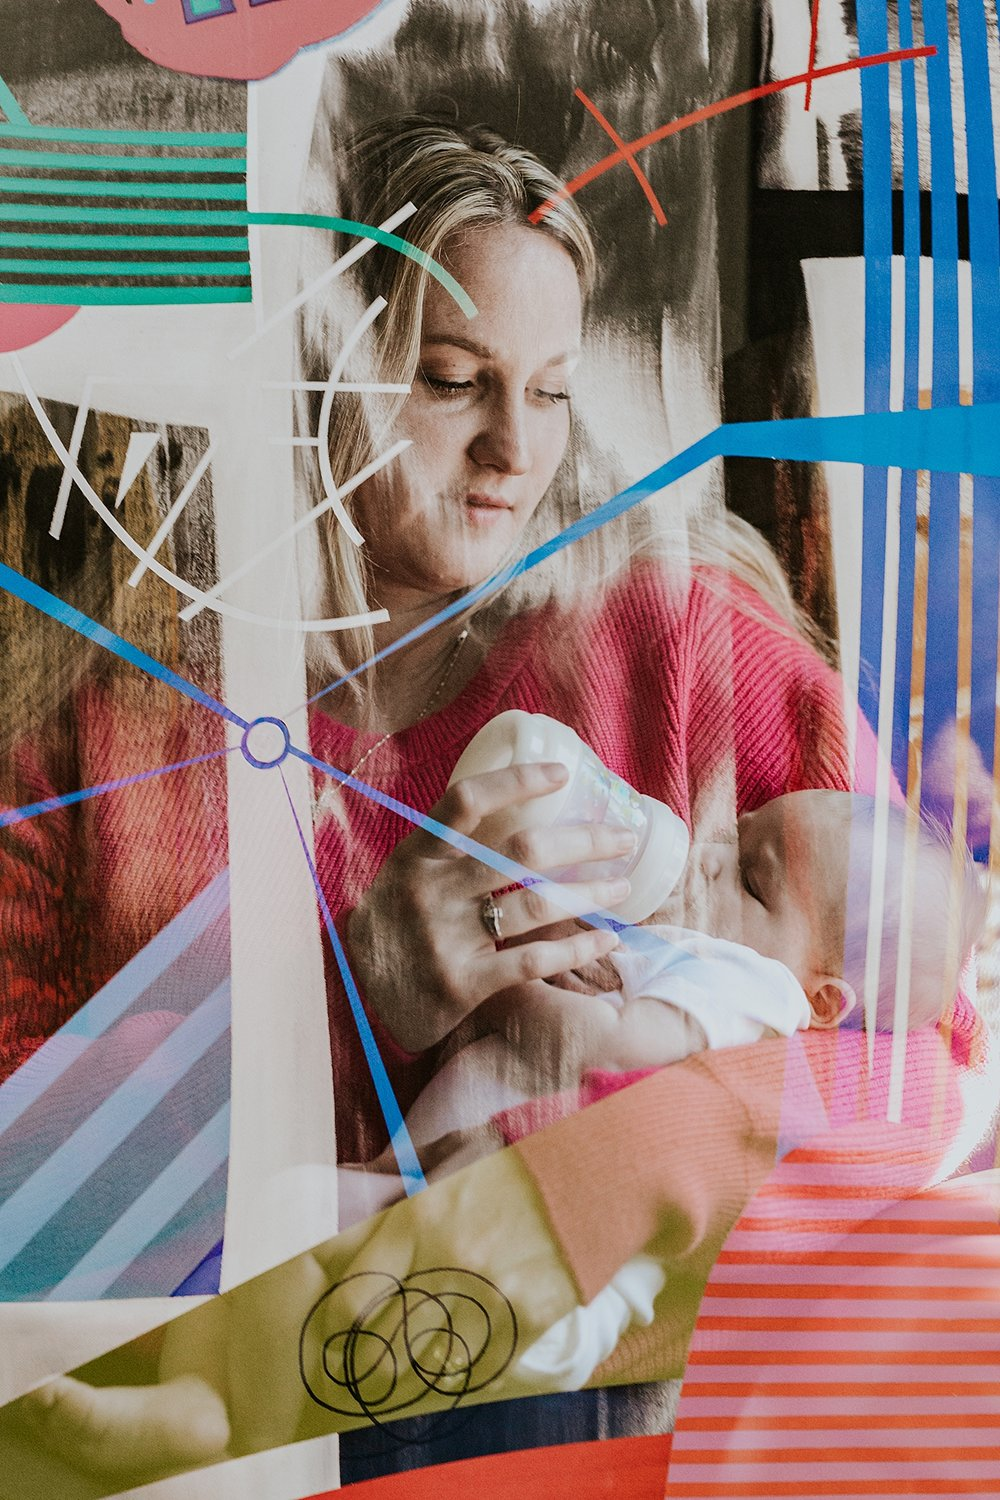 Orange County family photographer. Double exposure photo of family wall art and mom feeding her newborn son a bottle taken during newborn photo shoot in Mission Viejo Orange County